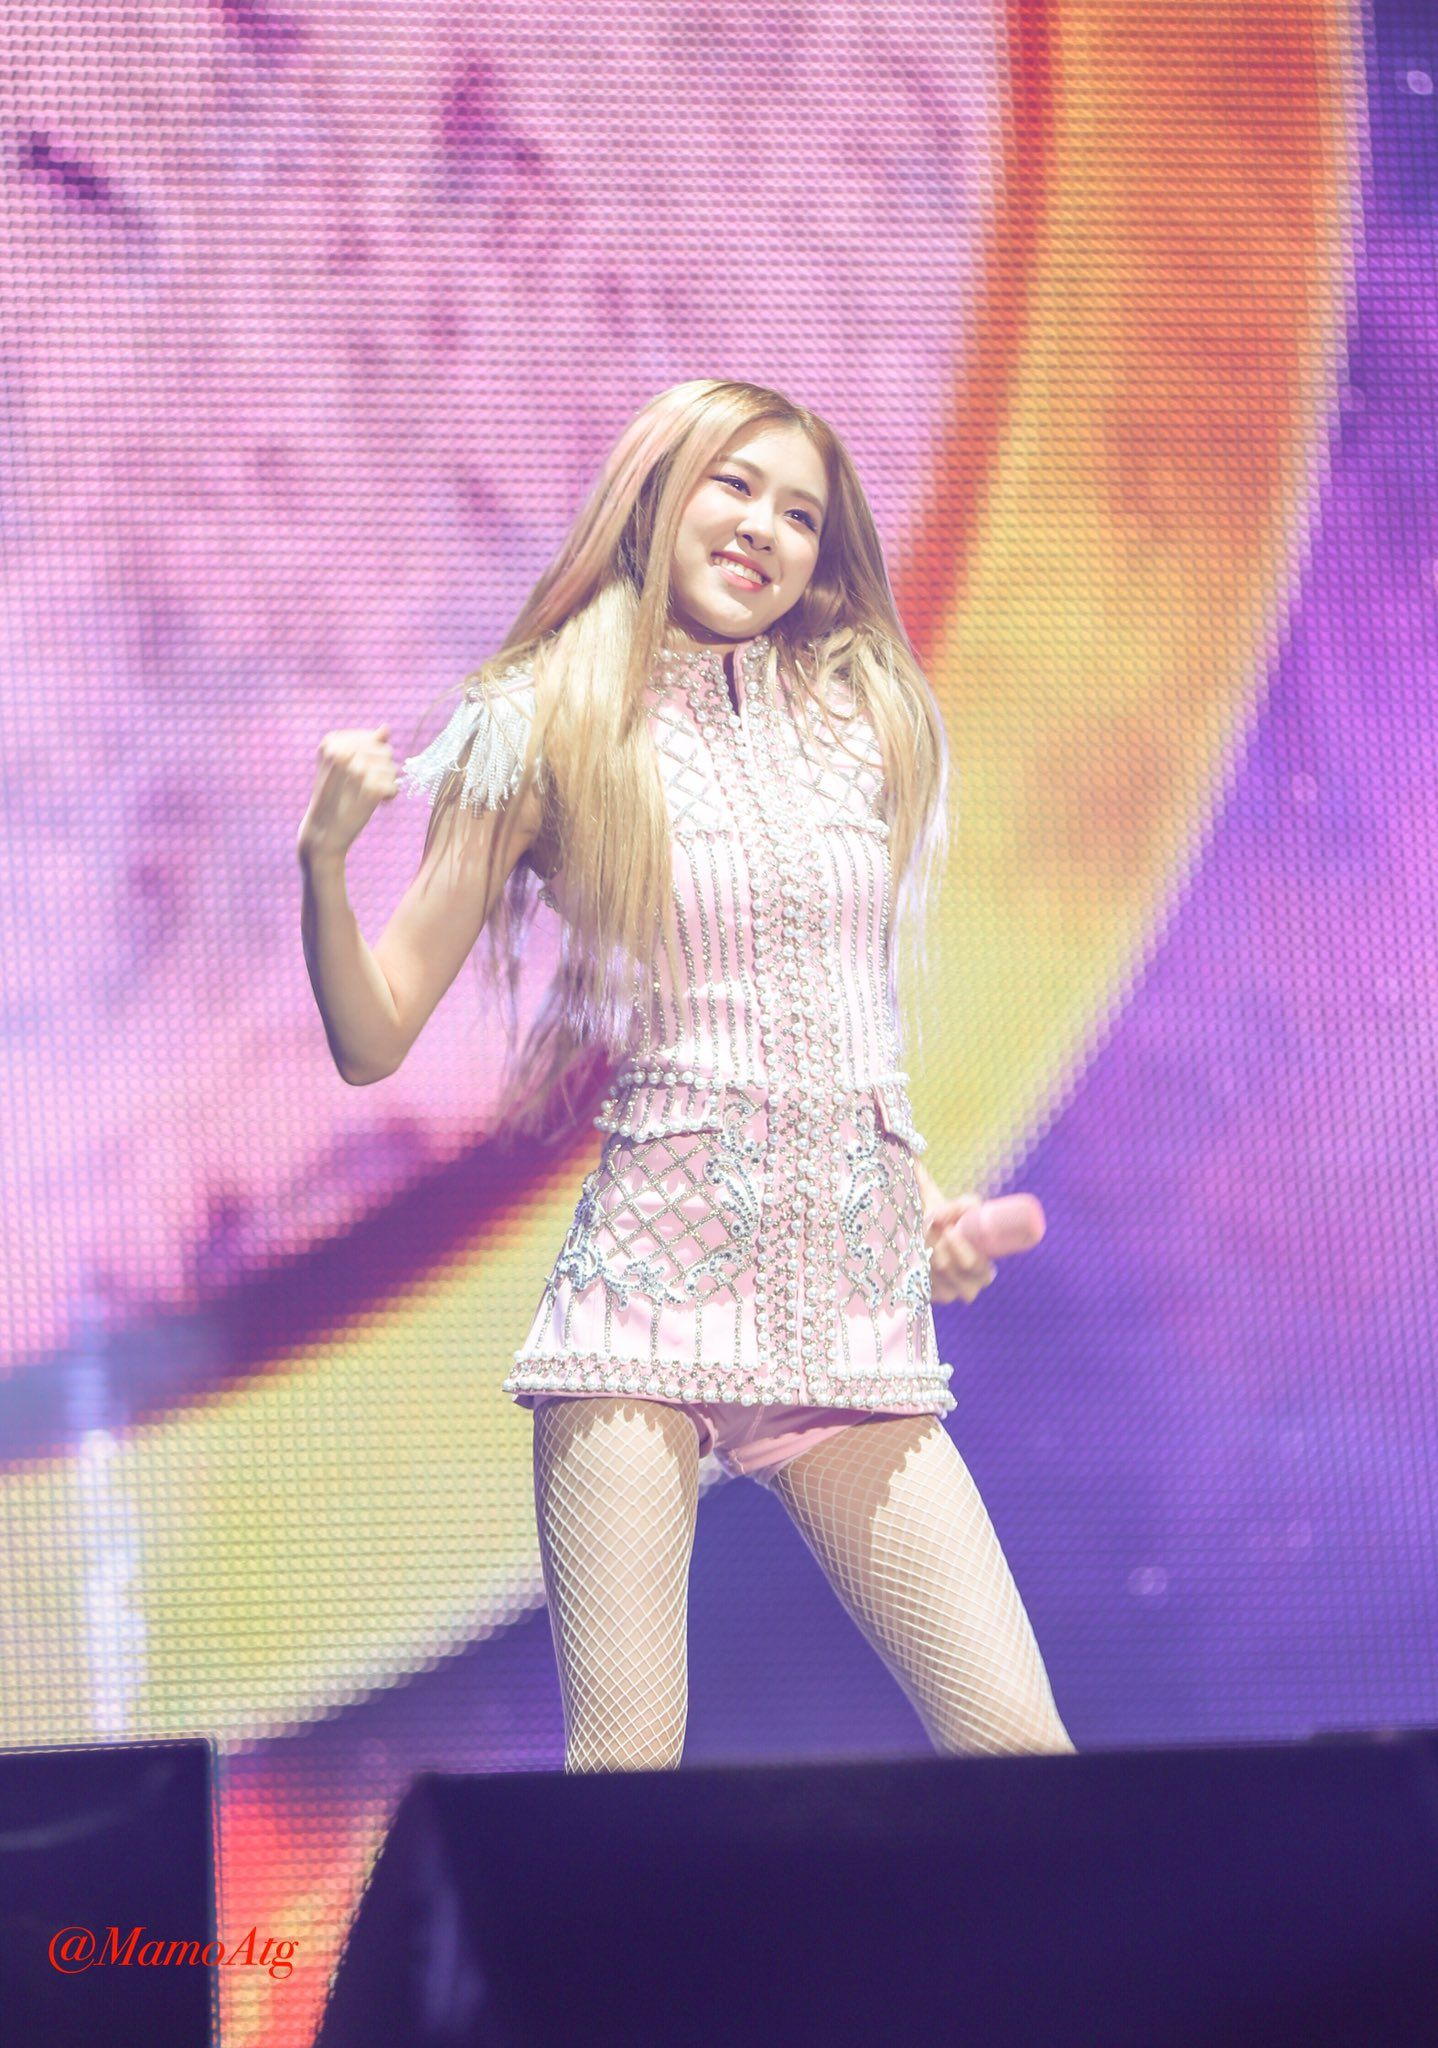 181110 BLACKPINK's 'IN YOUR AREA' Concert Seoul - Day 1 #rose